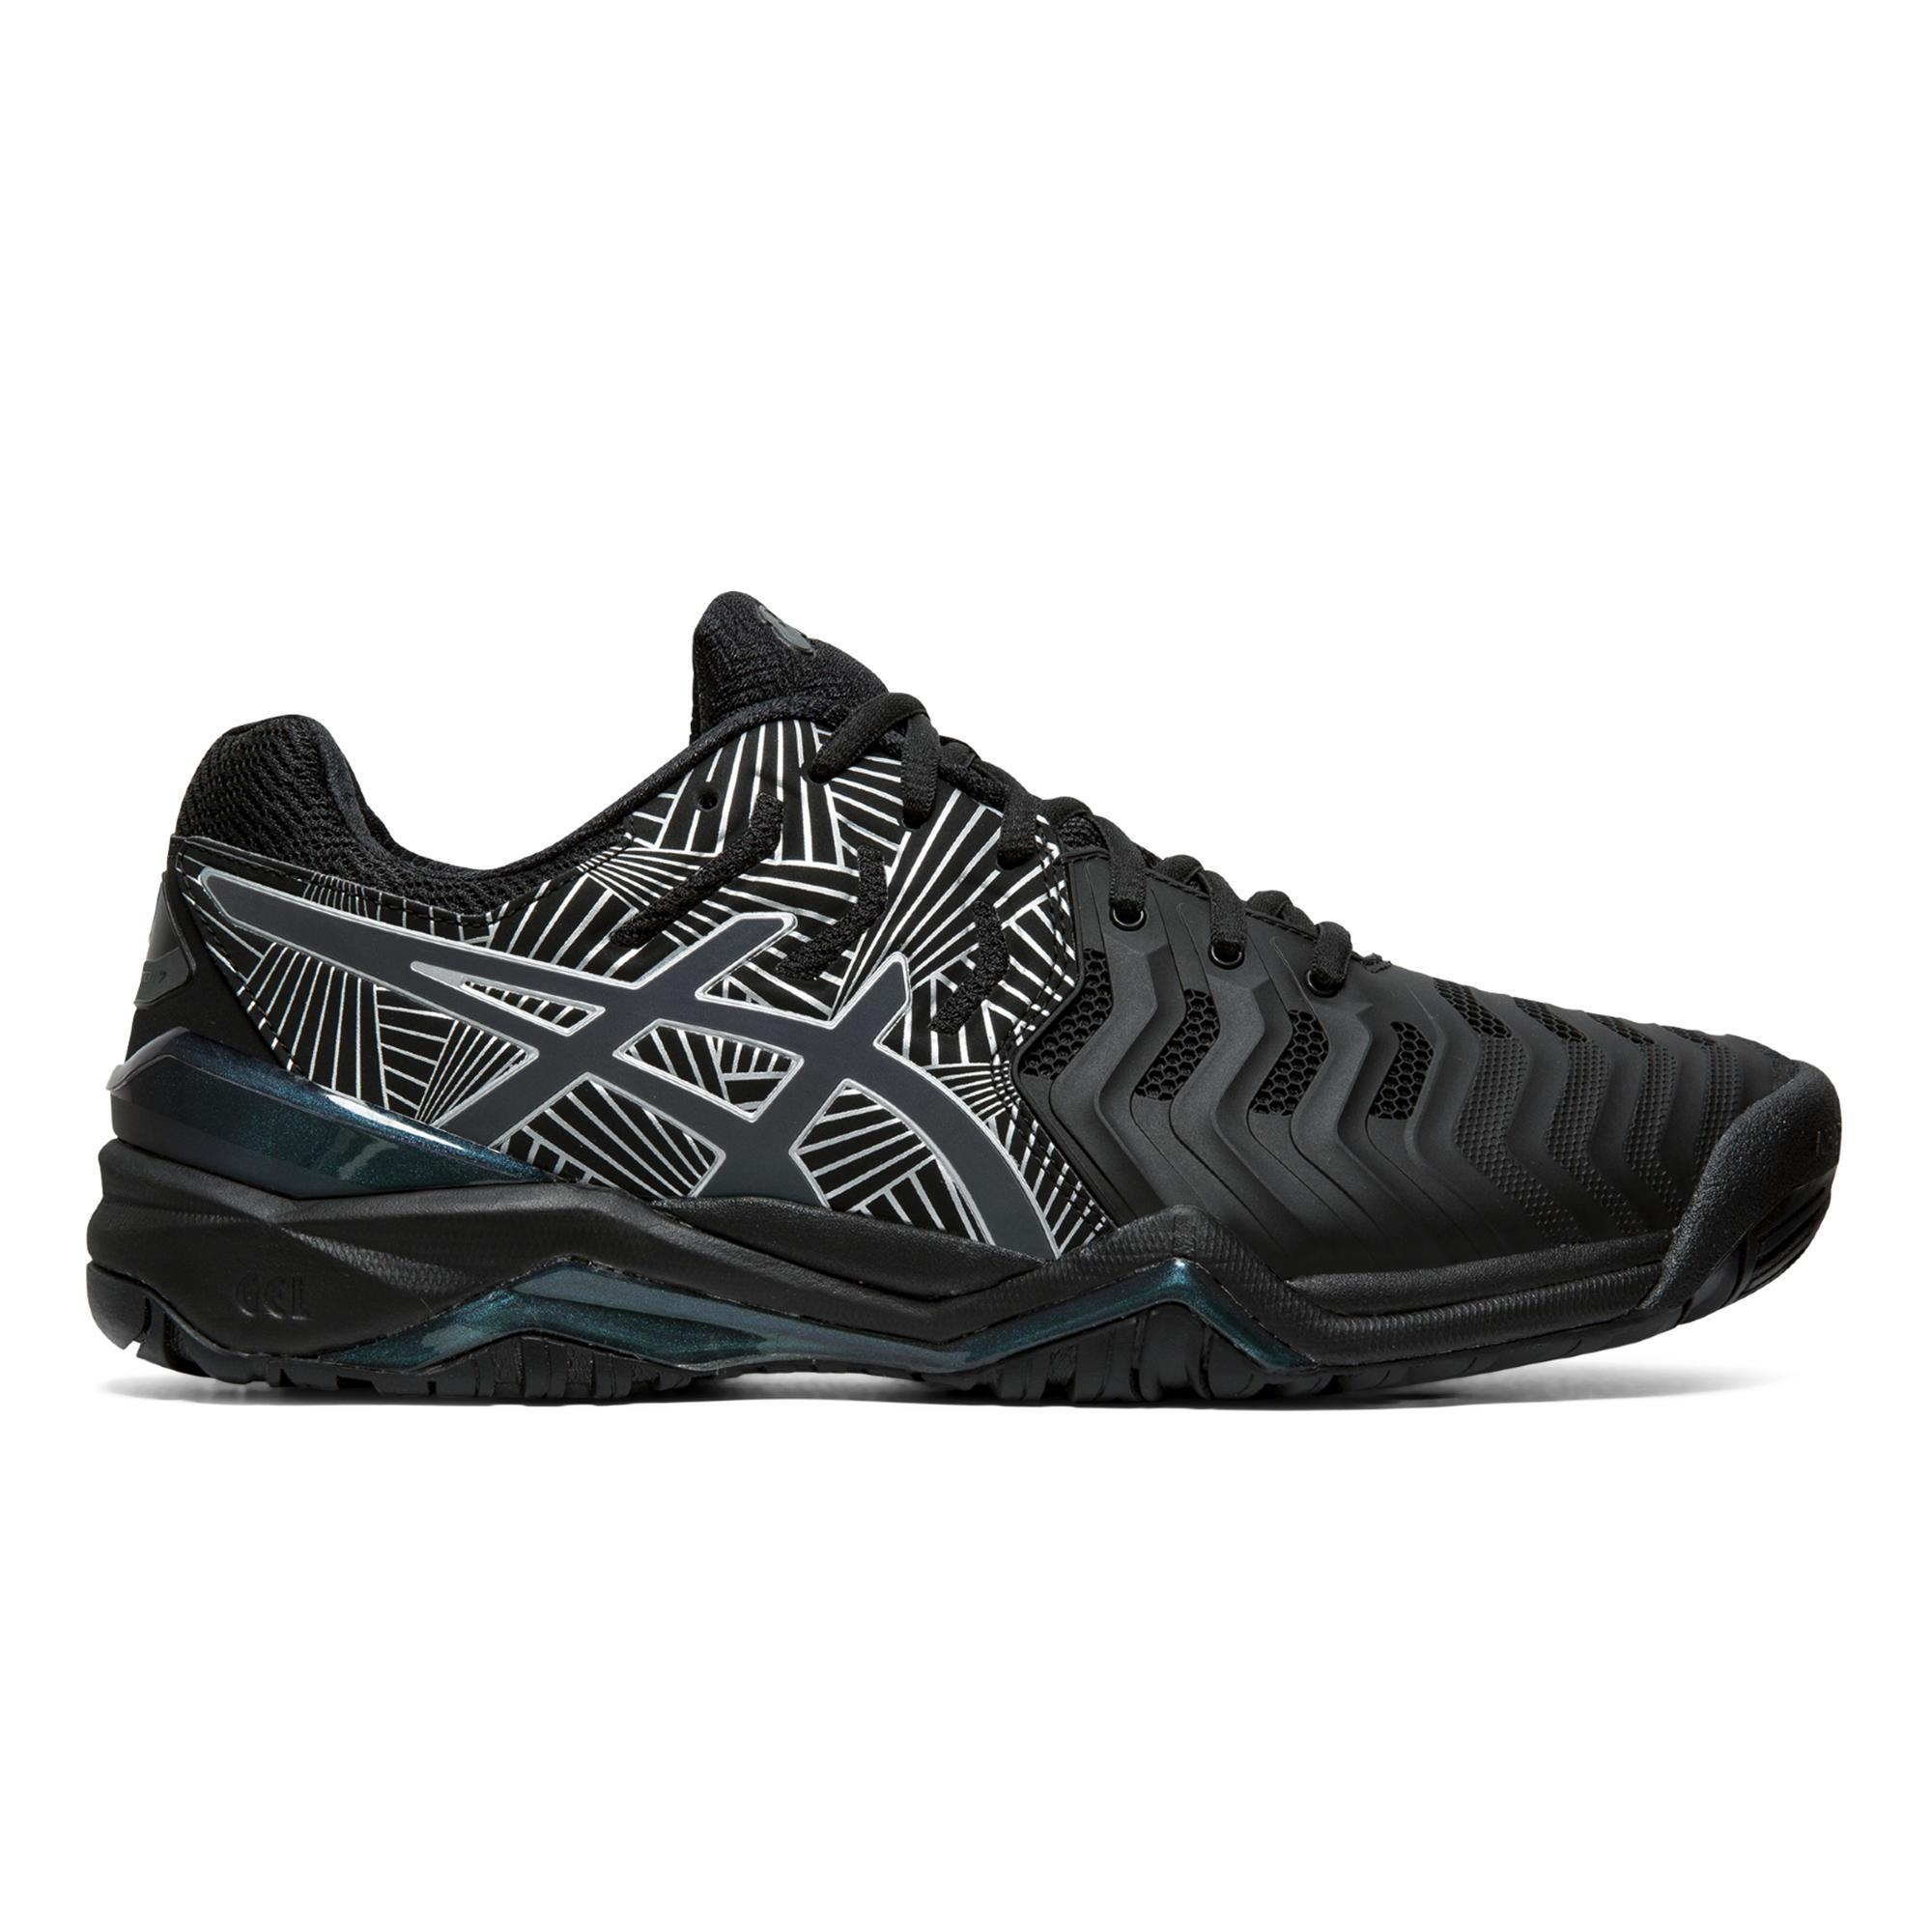 grande collection San Francisco chaussures exclusives Chaussures tennis | Decathlon